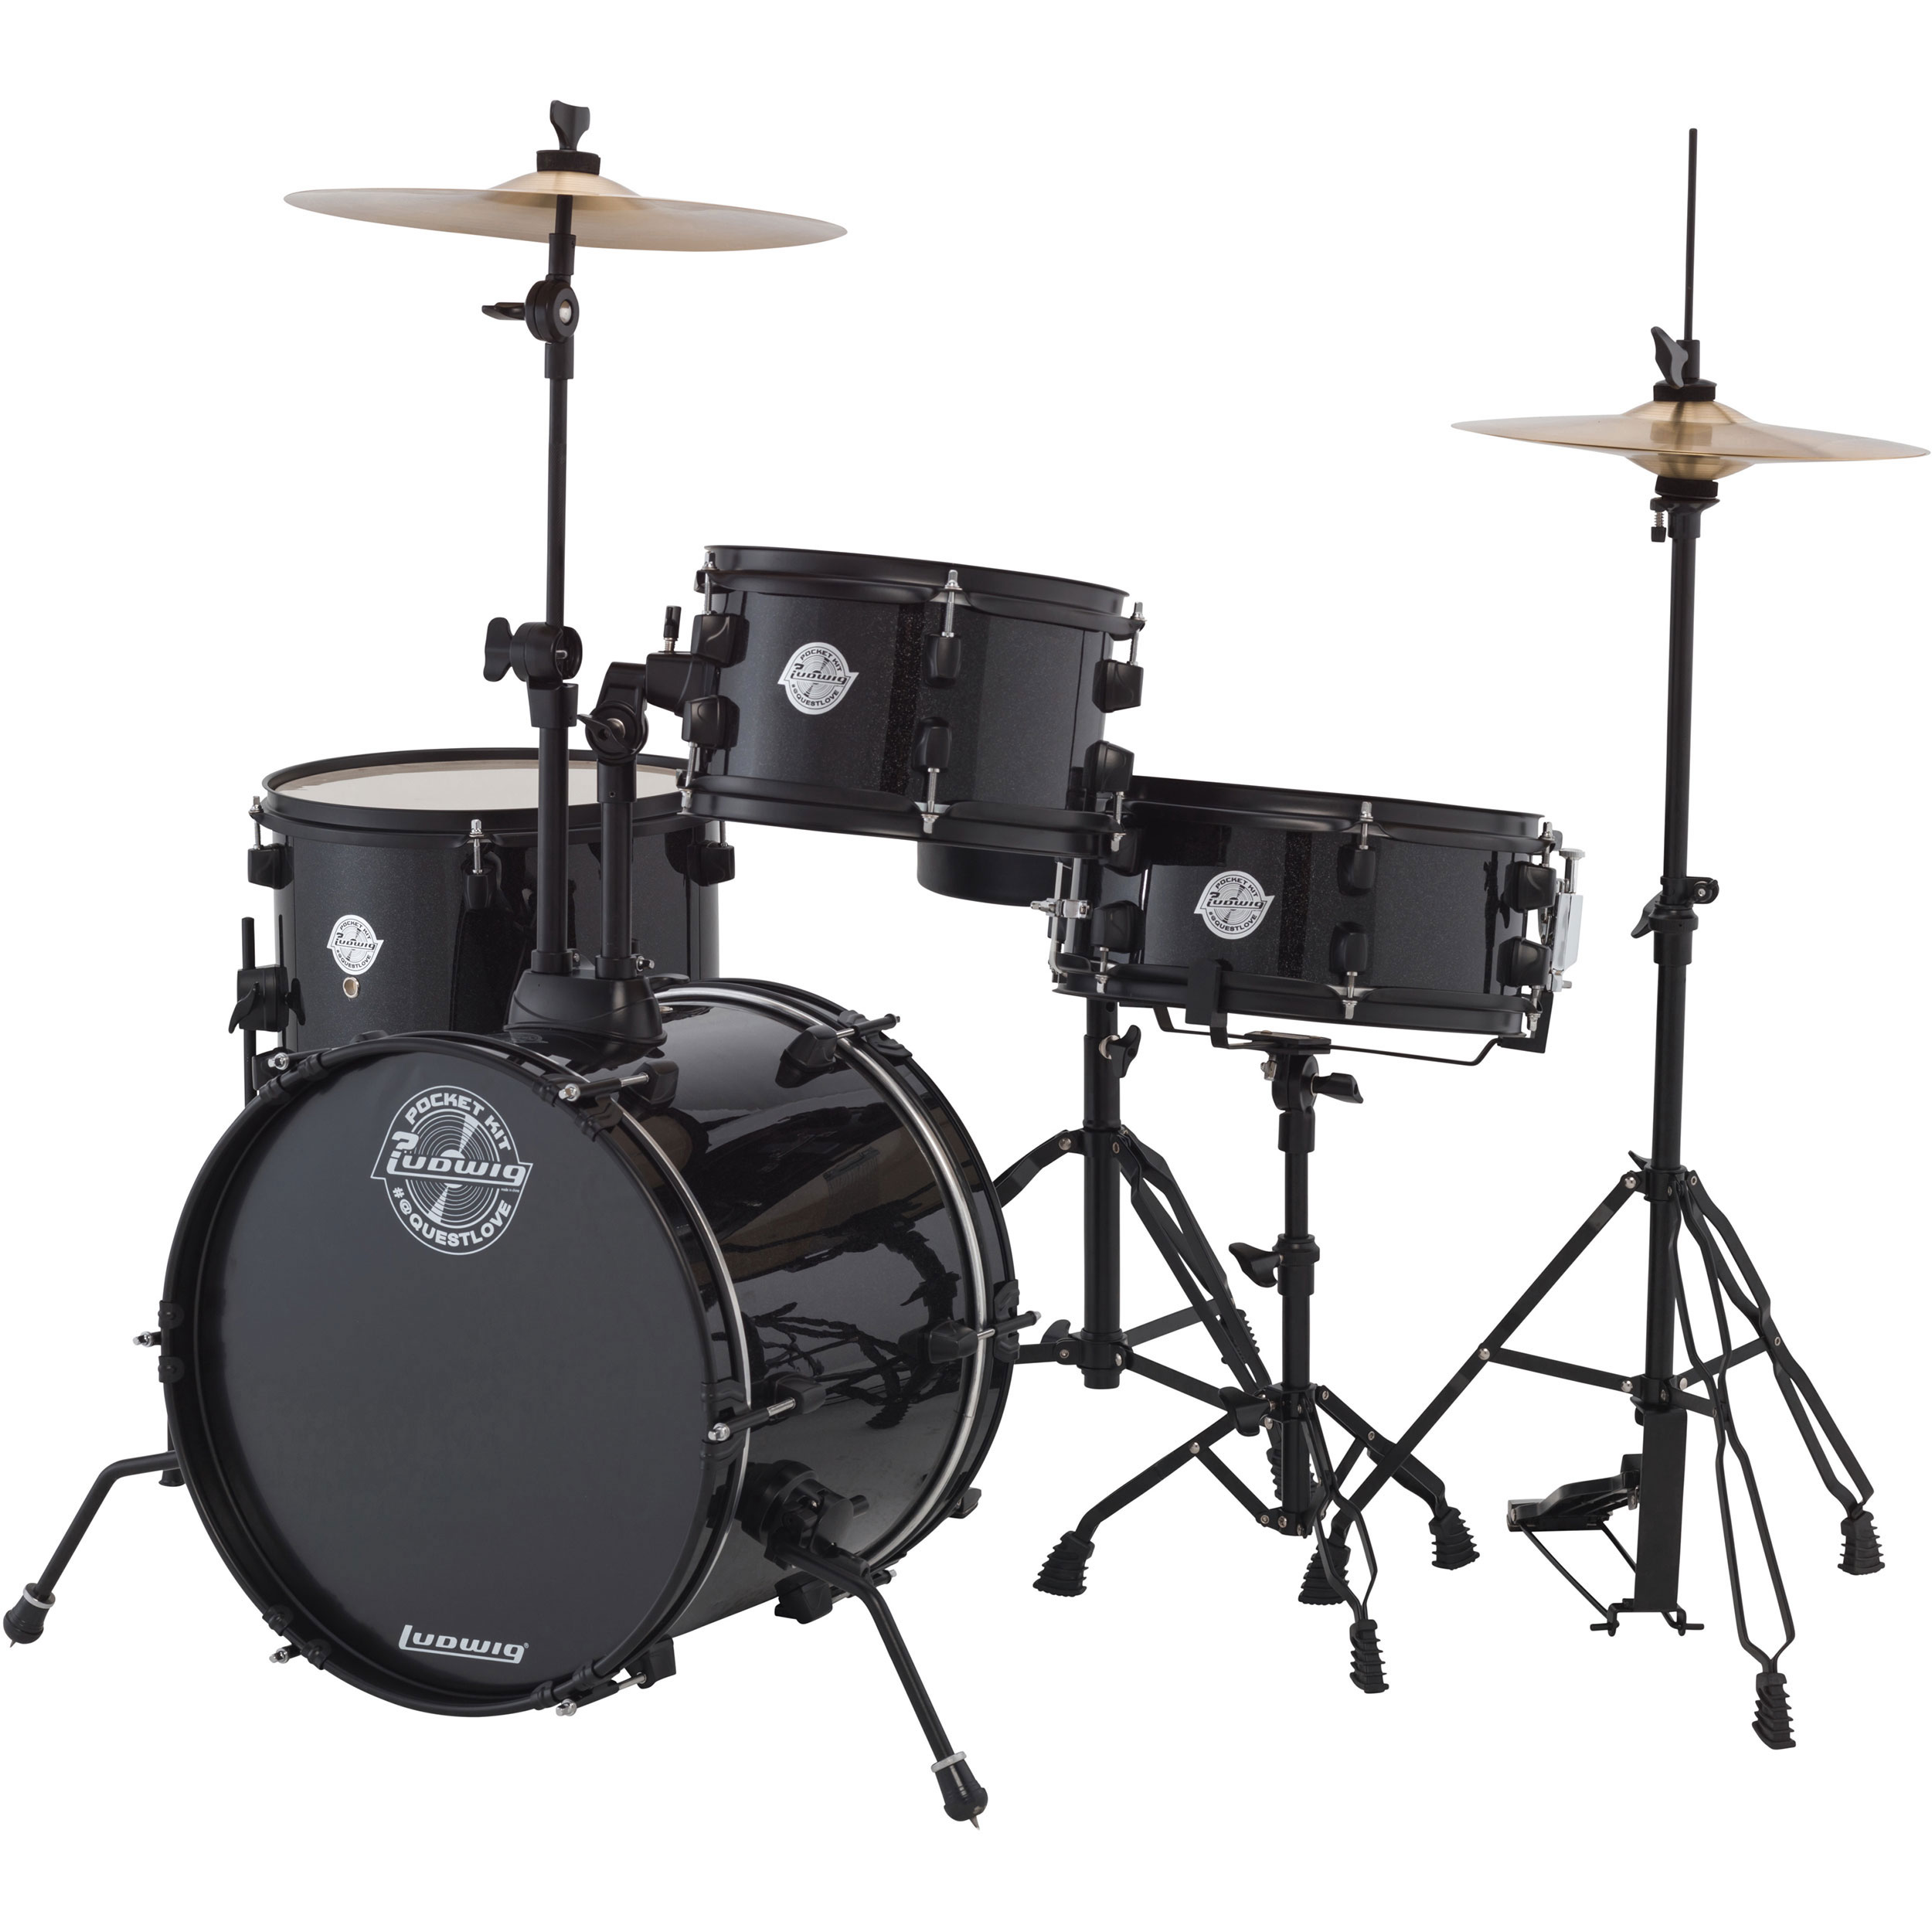 "Ludwig Pocket Kit 4-Piece Drum Set with Hardware & Cymbals (16"" Bass, 10/13"" Toms, 12"" Snare)"